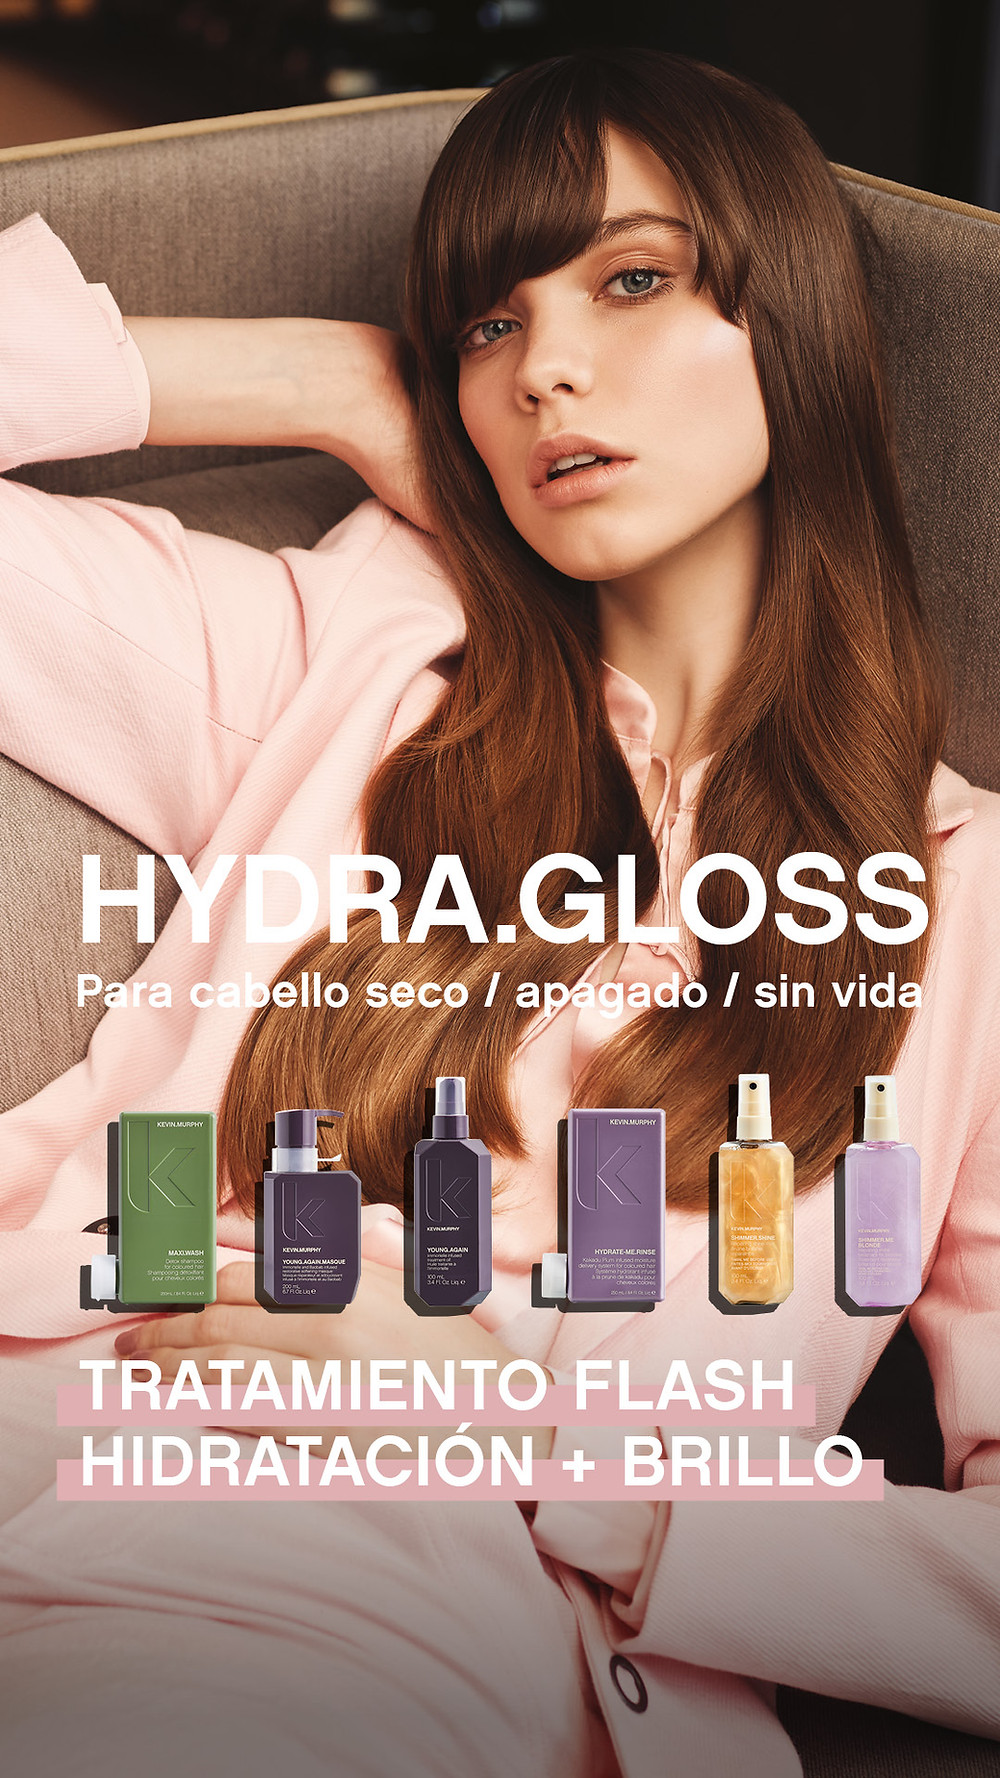 Huydra.Gloss Kevin Murphy Dolce Vita Perruquers